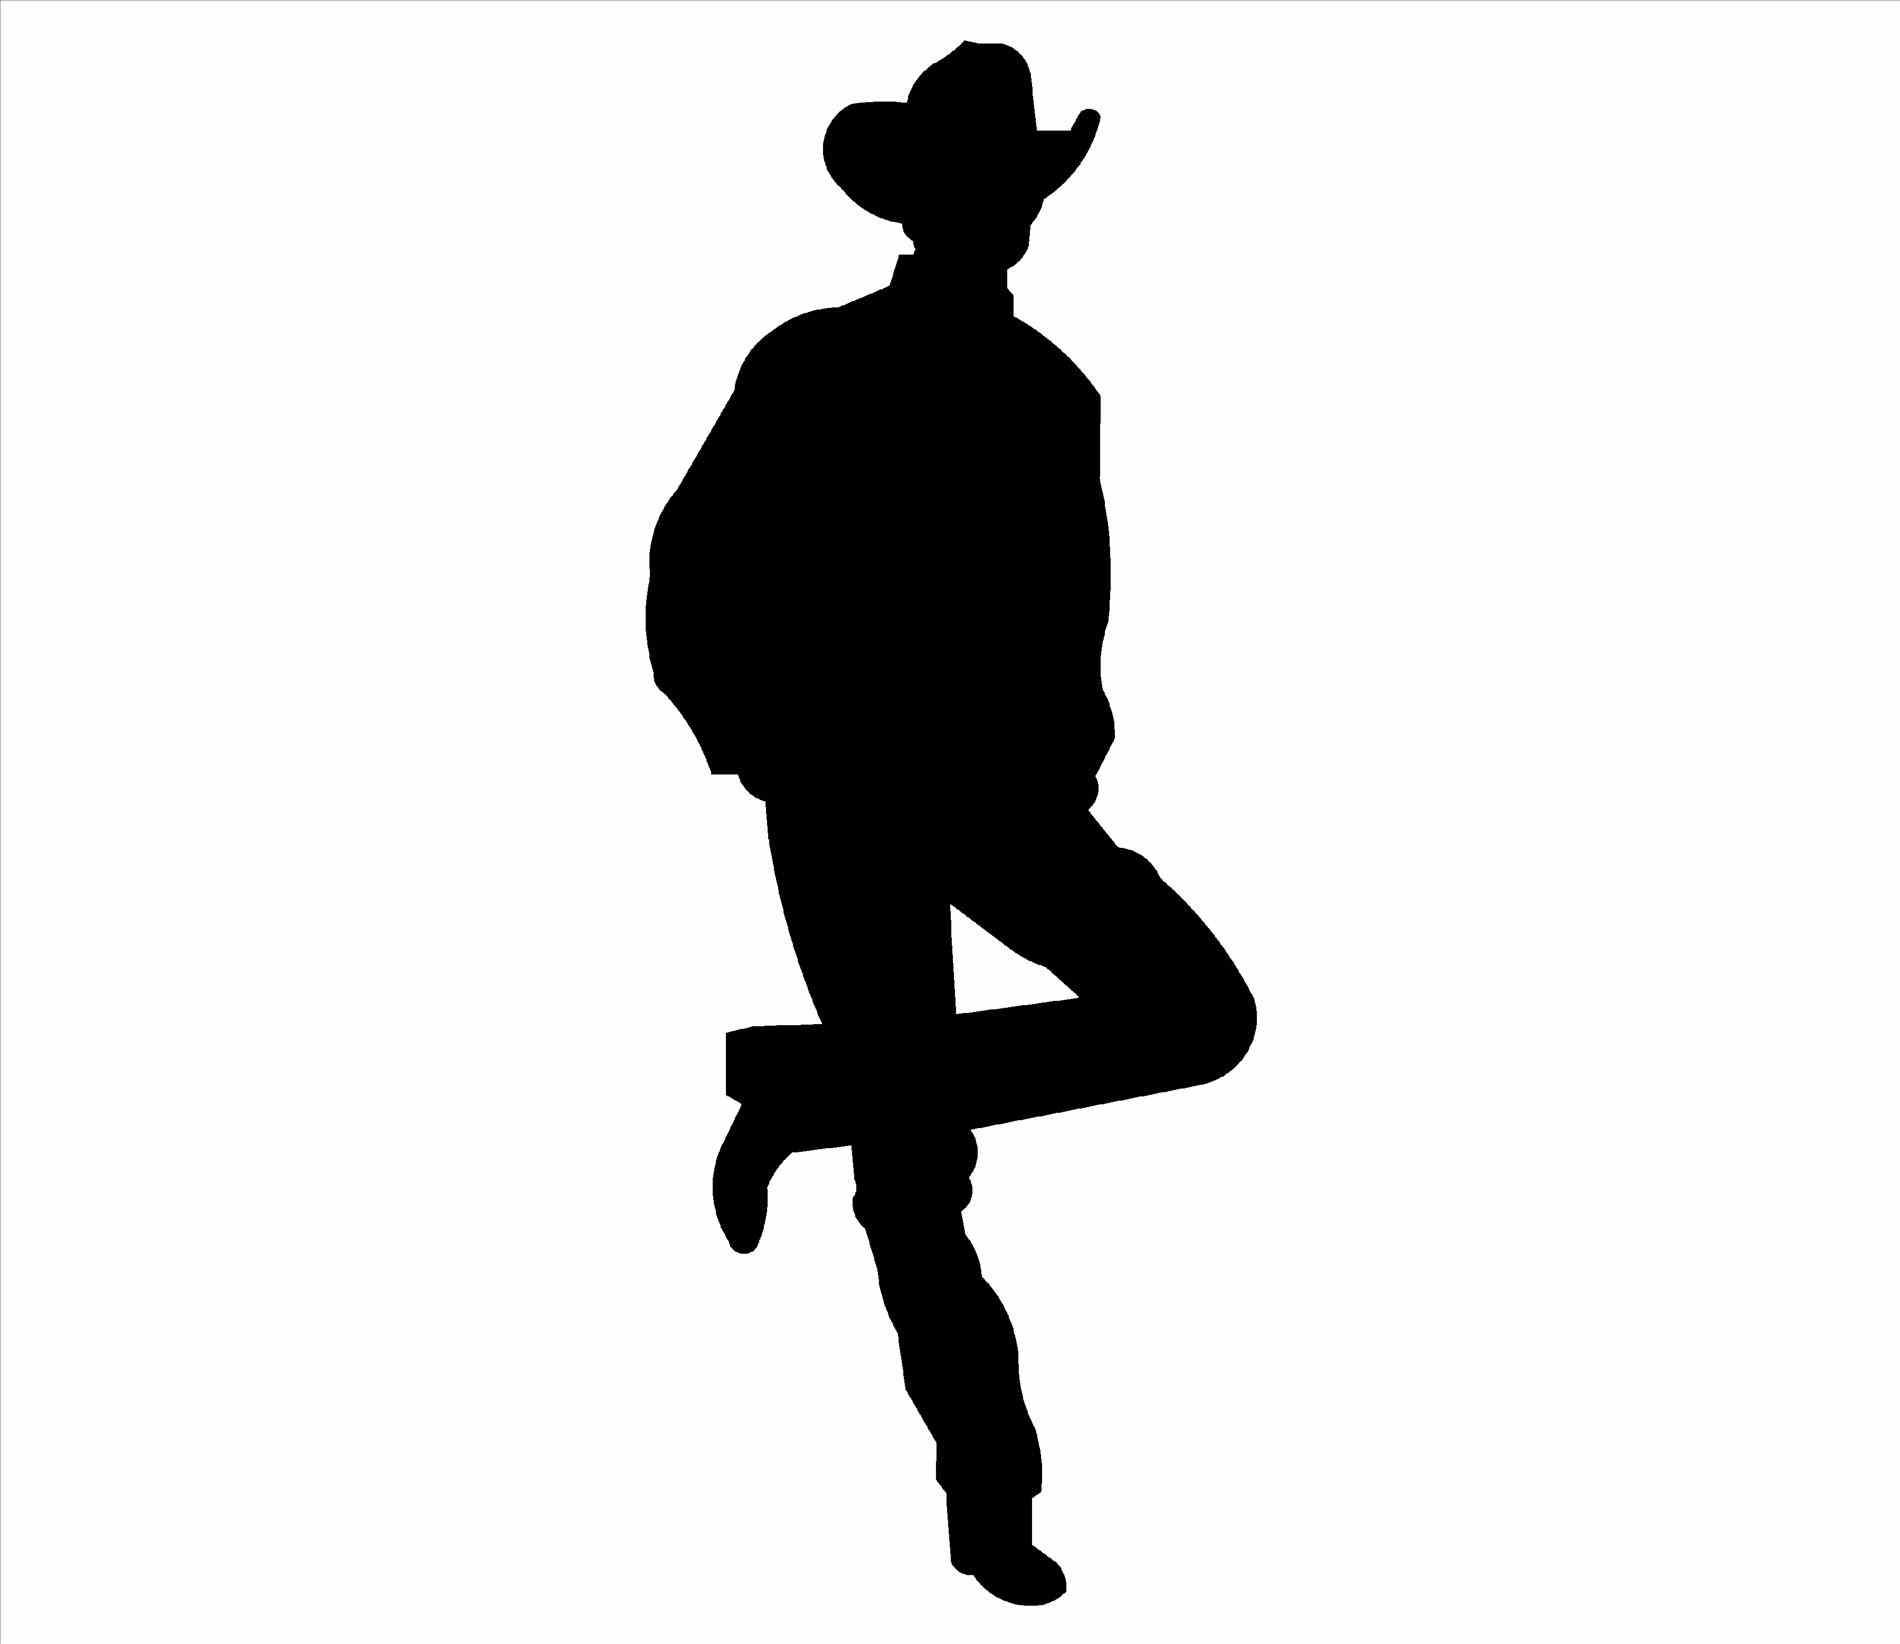 Cowboy Silhouette Clipart at GetDrawings.com.